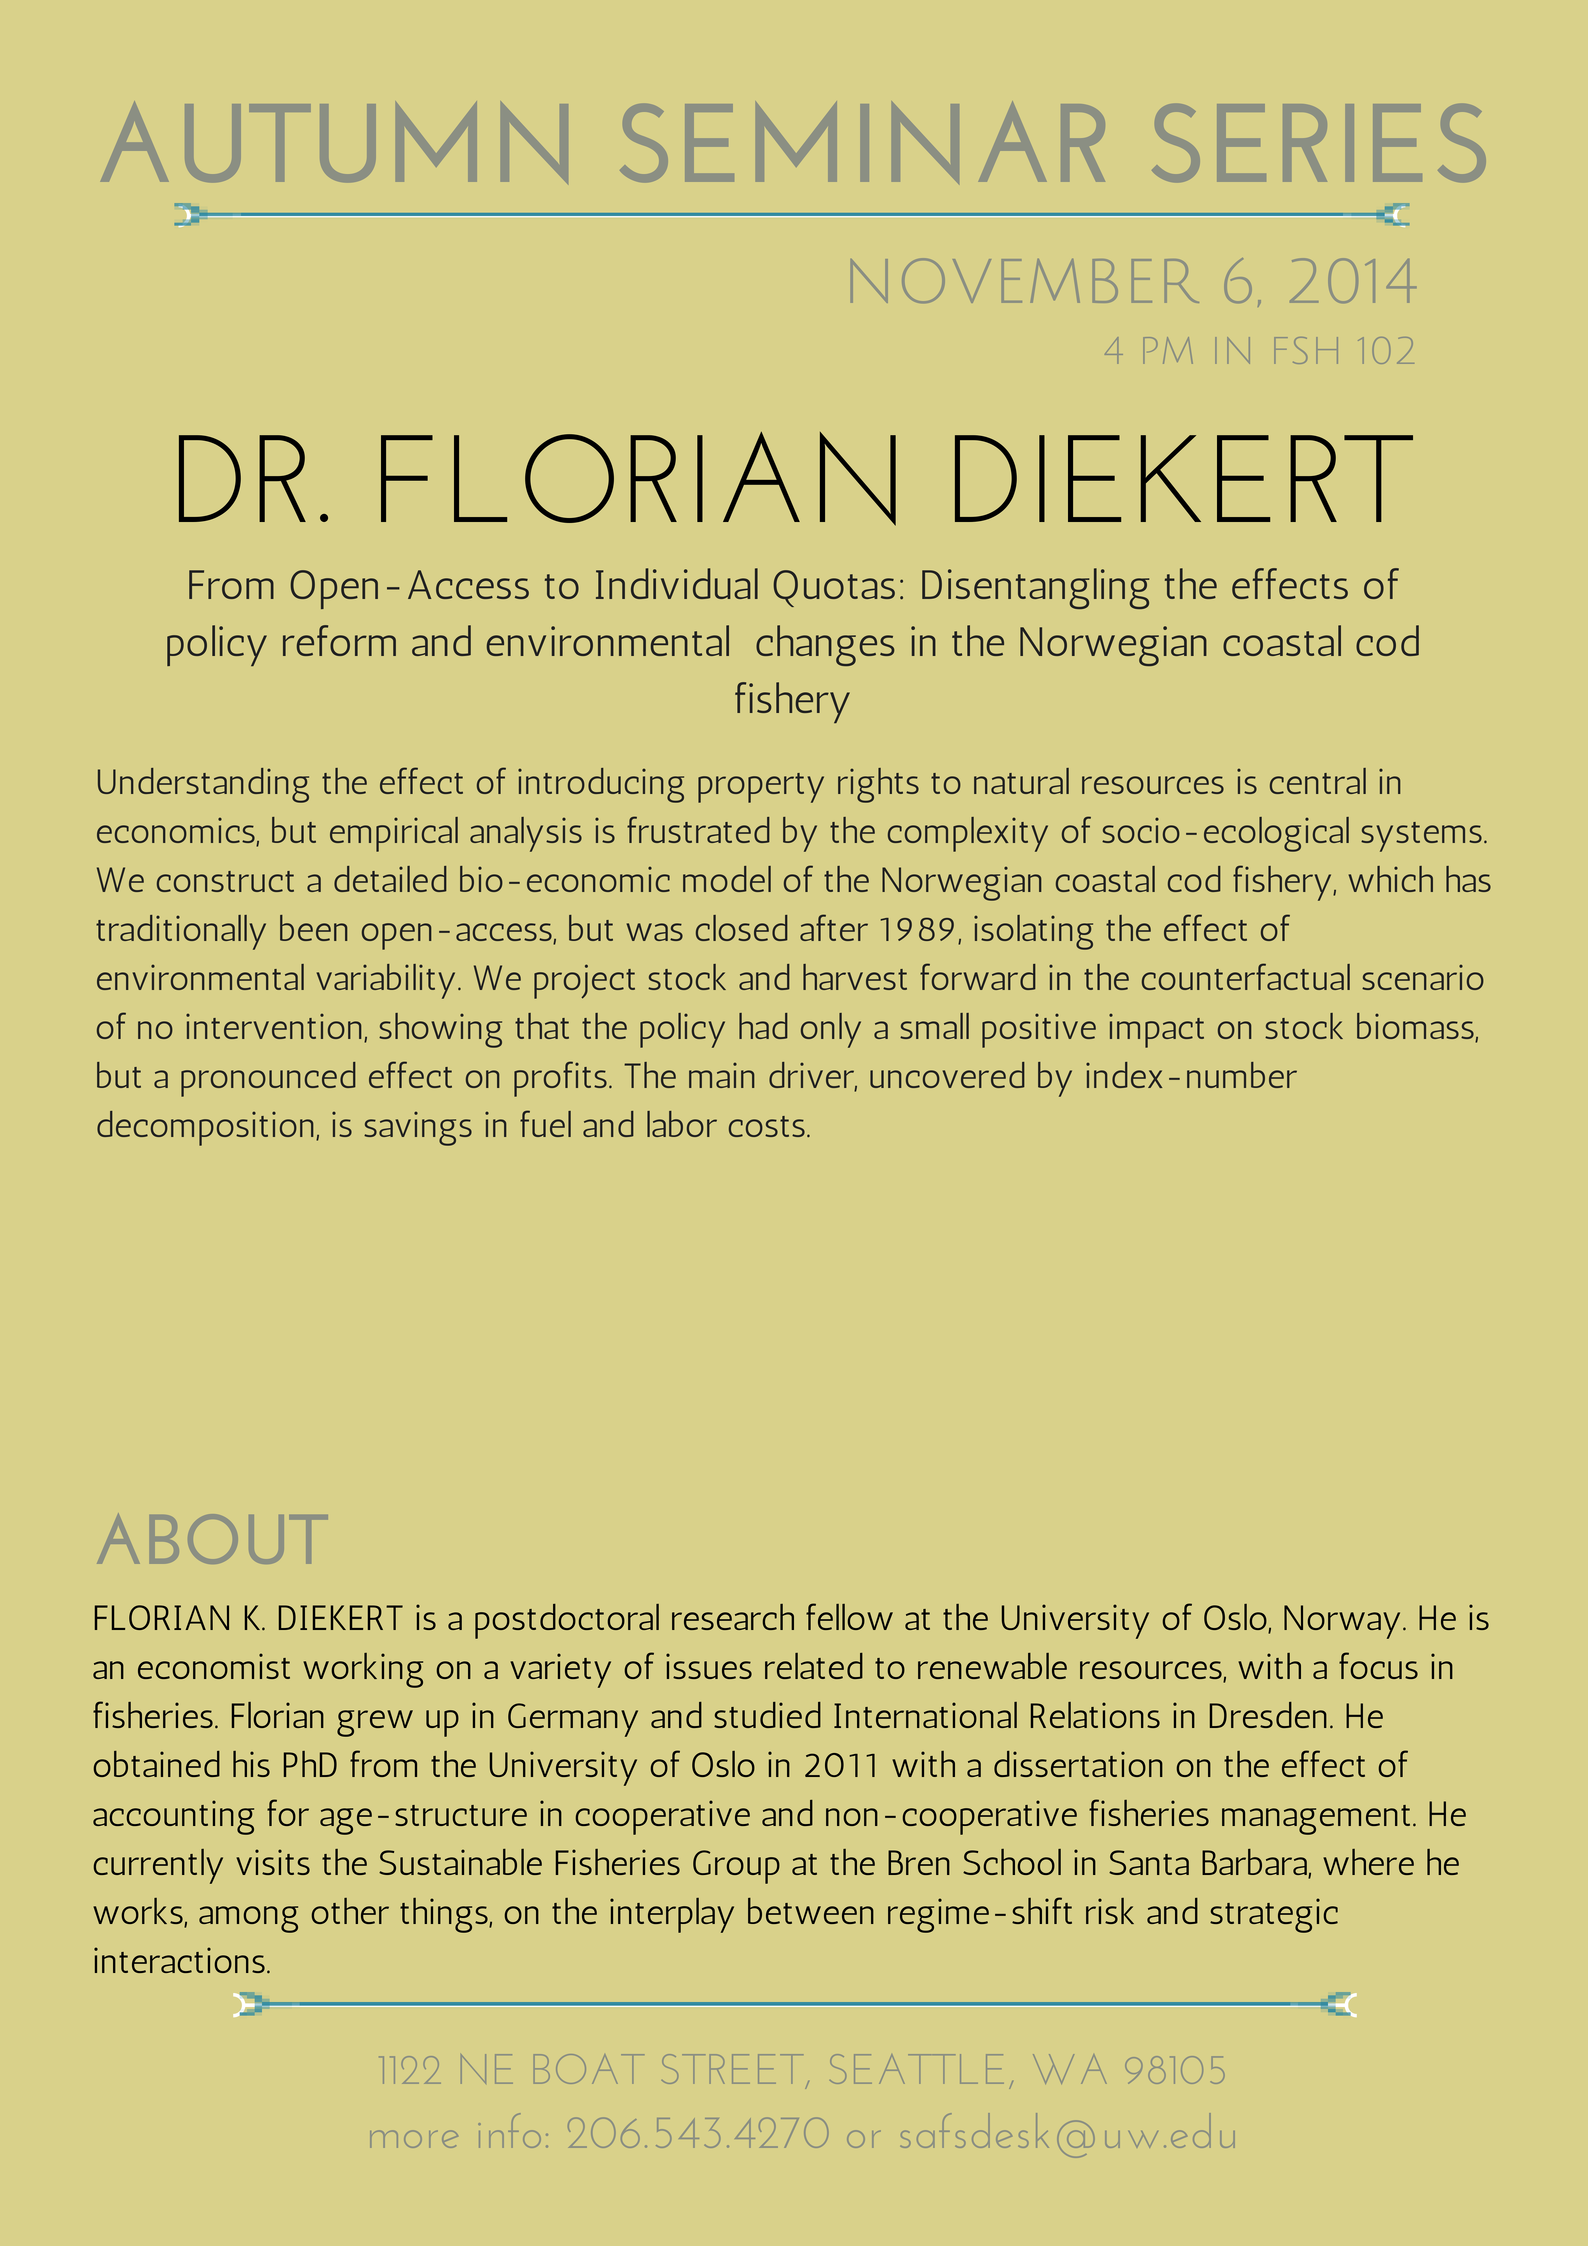 Diekert Abstract